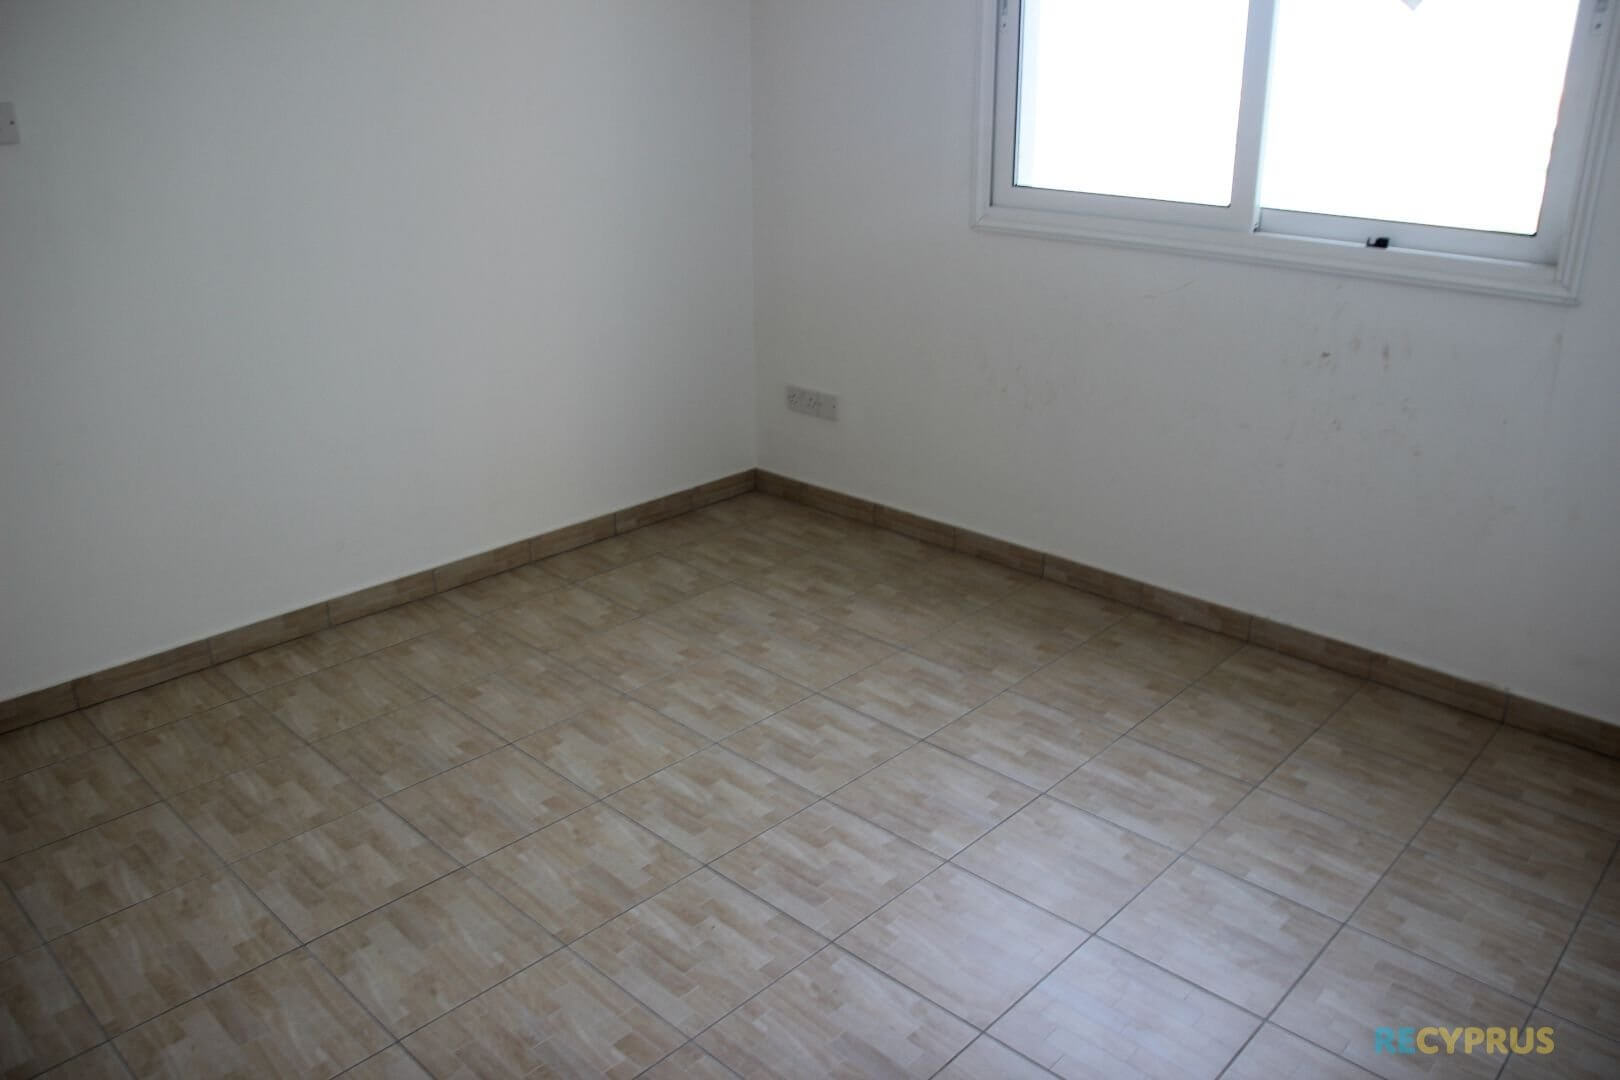 Apartment for sale Kapparis Famagusta Cyprus 8 3519